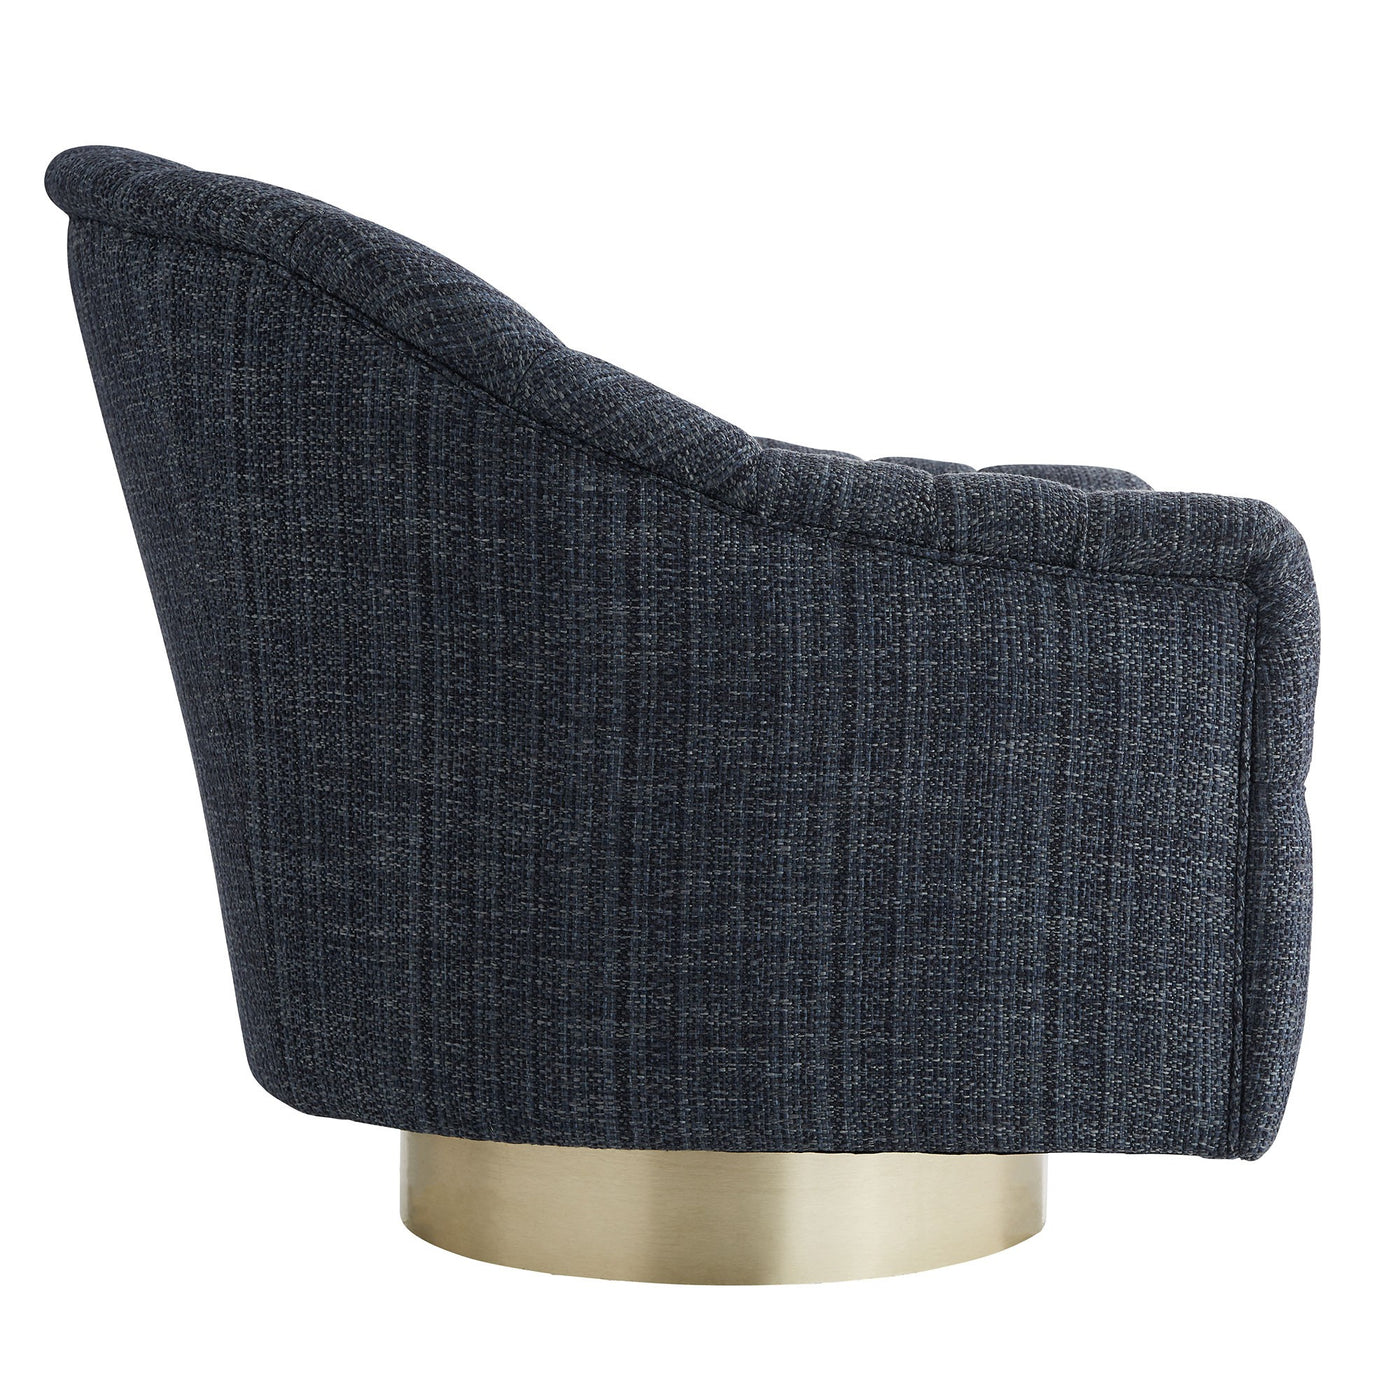 arteriors home springsteen chair indigo tweed side